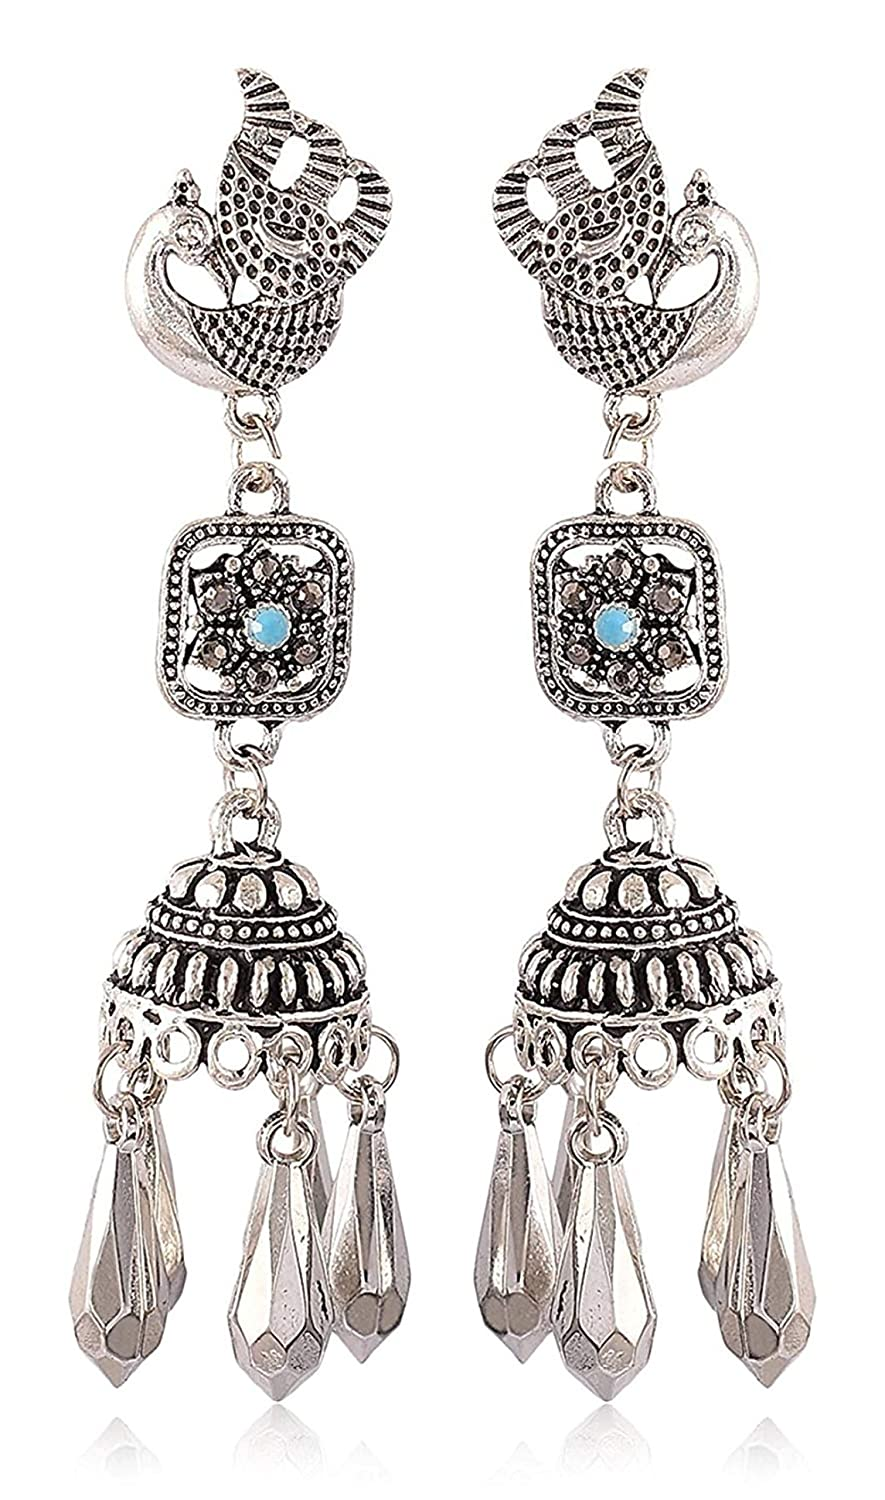 Subharpit Silver Pearl Oxidized Silver Metal Non Precious Indian Ethnic Tratitional Tops Jhumki